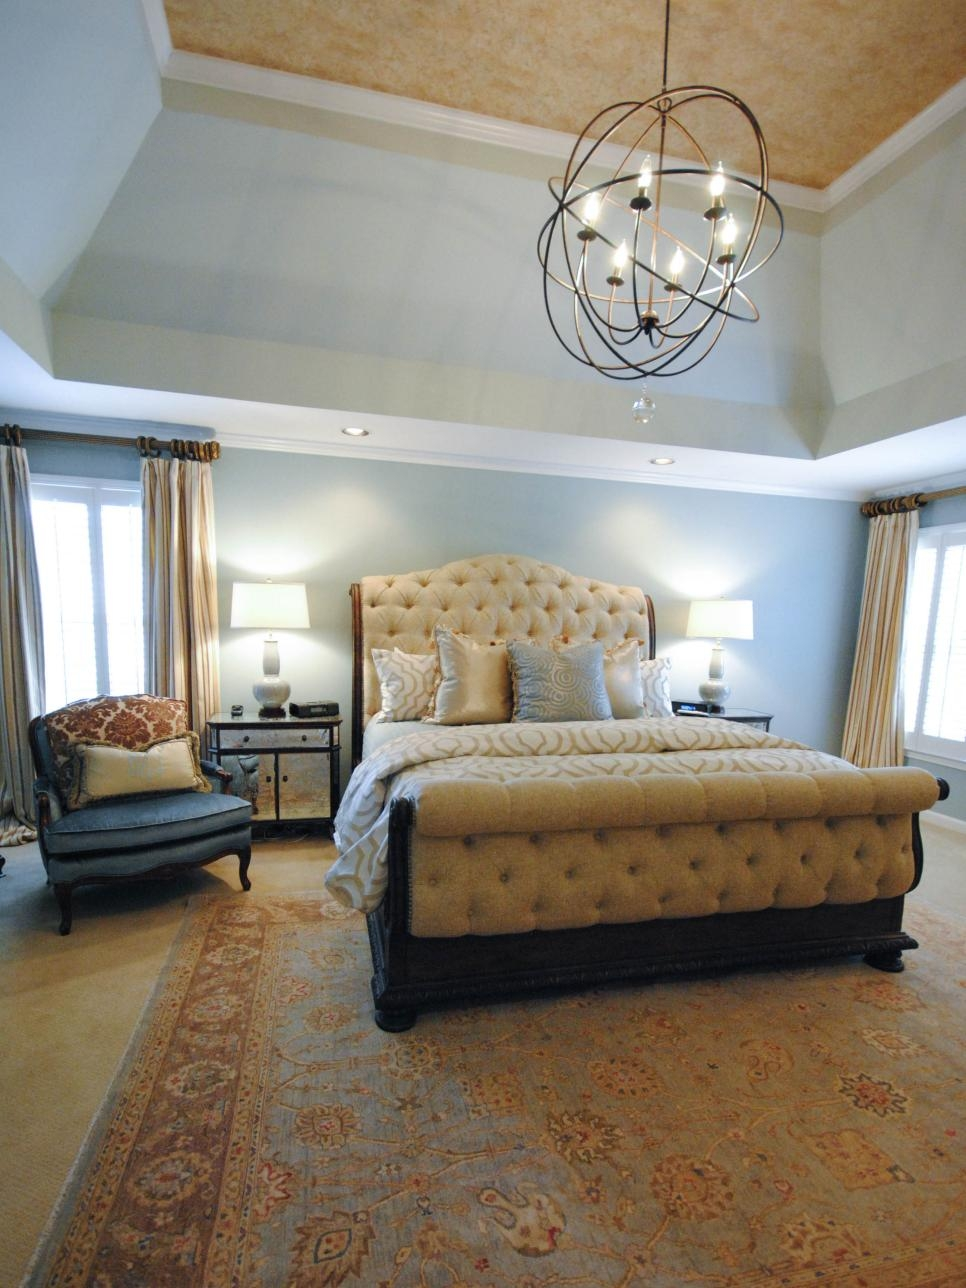 Pictures Of Dreamy Bedroom Chandeliers Hgtv Throughout Bedroom Chandeliers (Image 15 of 15)